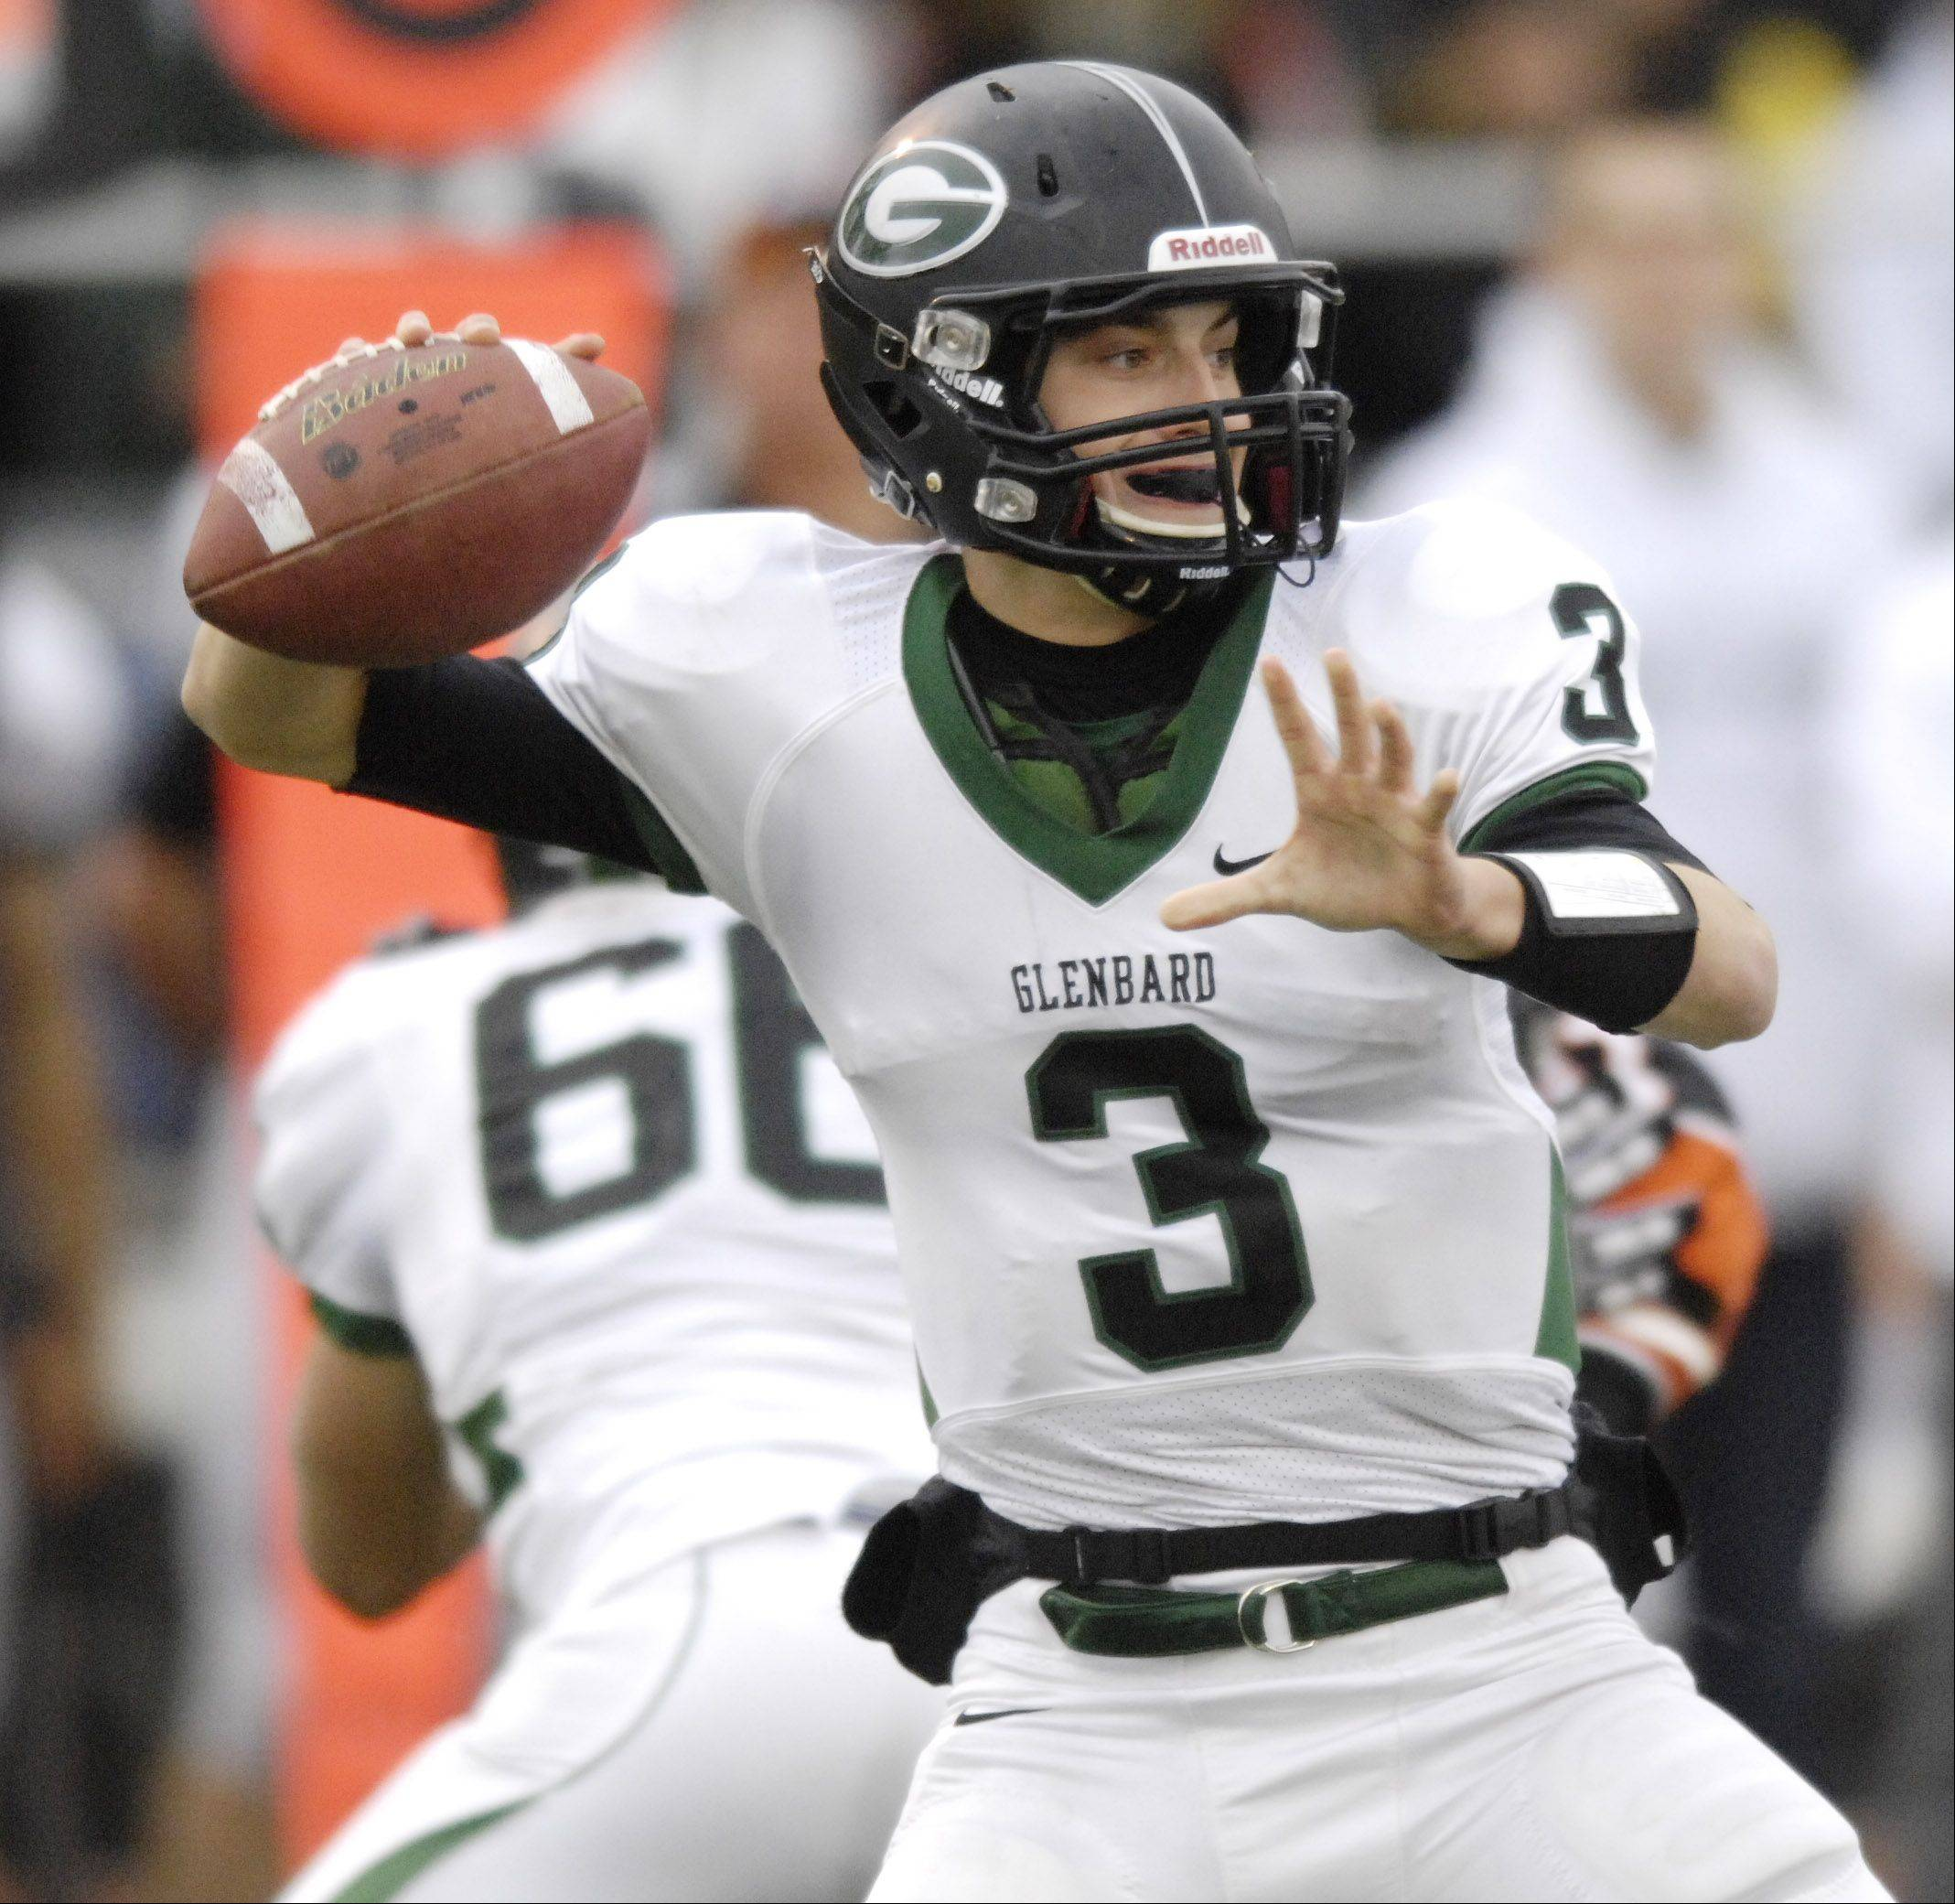 Glenbard West quarterback Henry Haeffner throws a pass during Saturday's game against Libertyville.